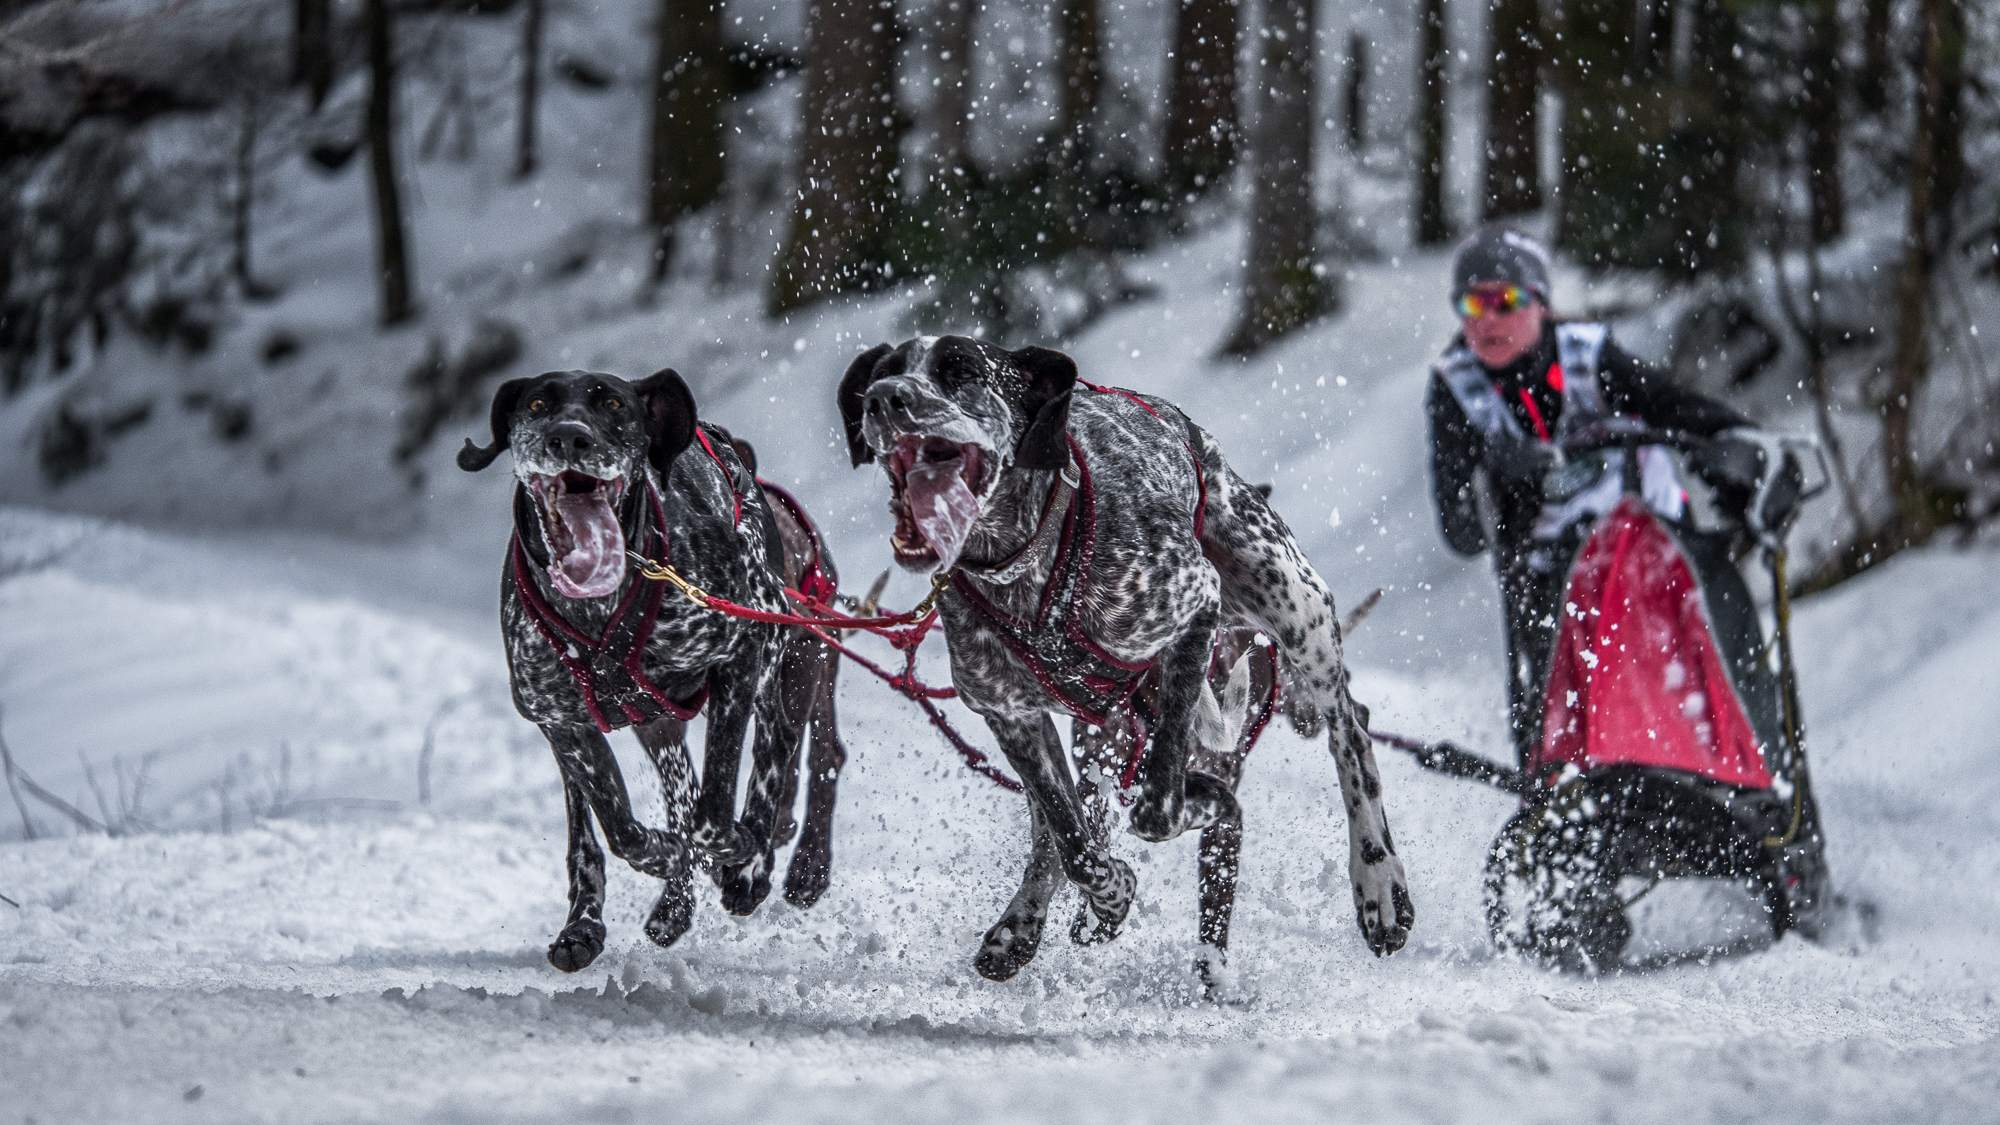 sled dog1 The World Championship of Sled Dog in Black Forest, Germany